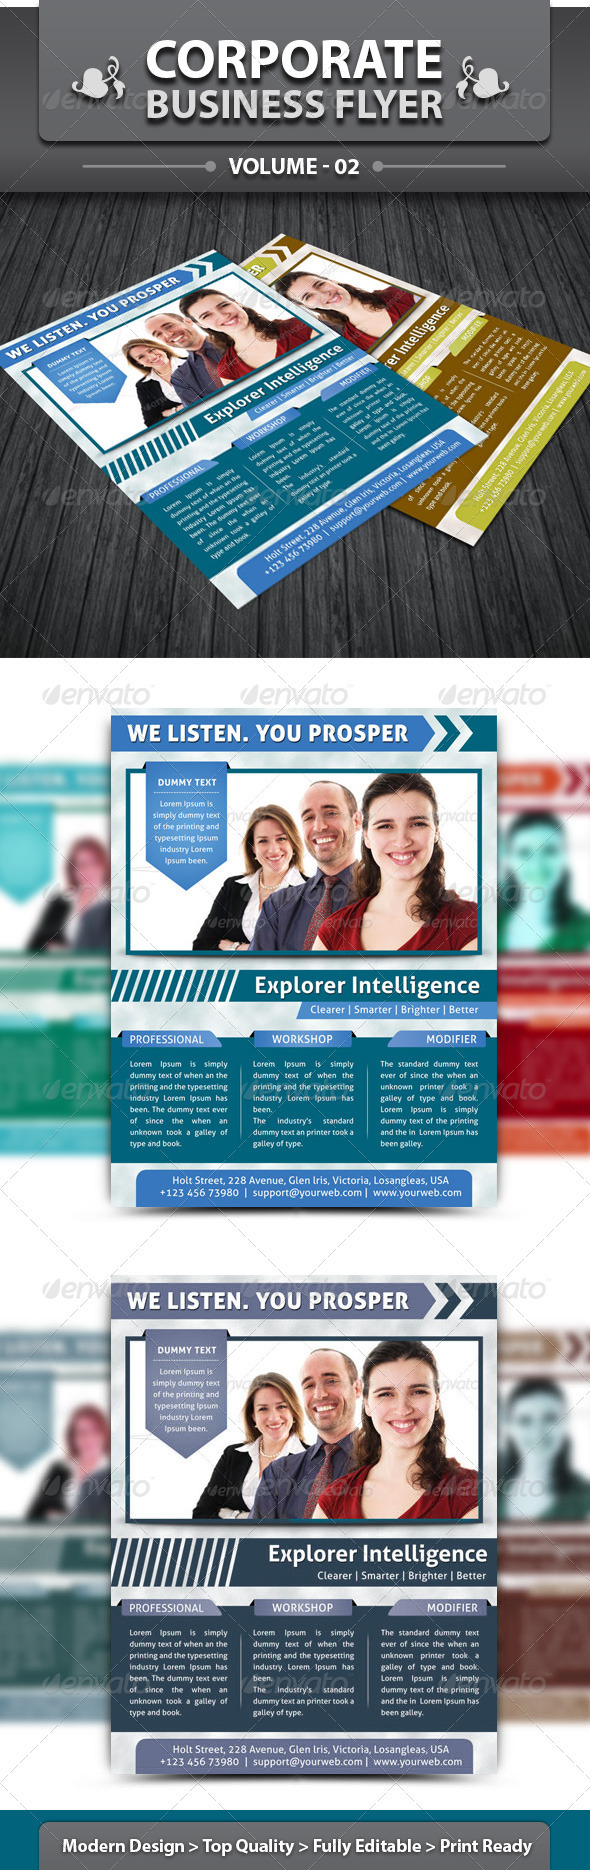 Corporate Business Flyer | Volume 2 - Corporate Flyers